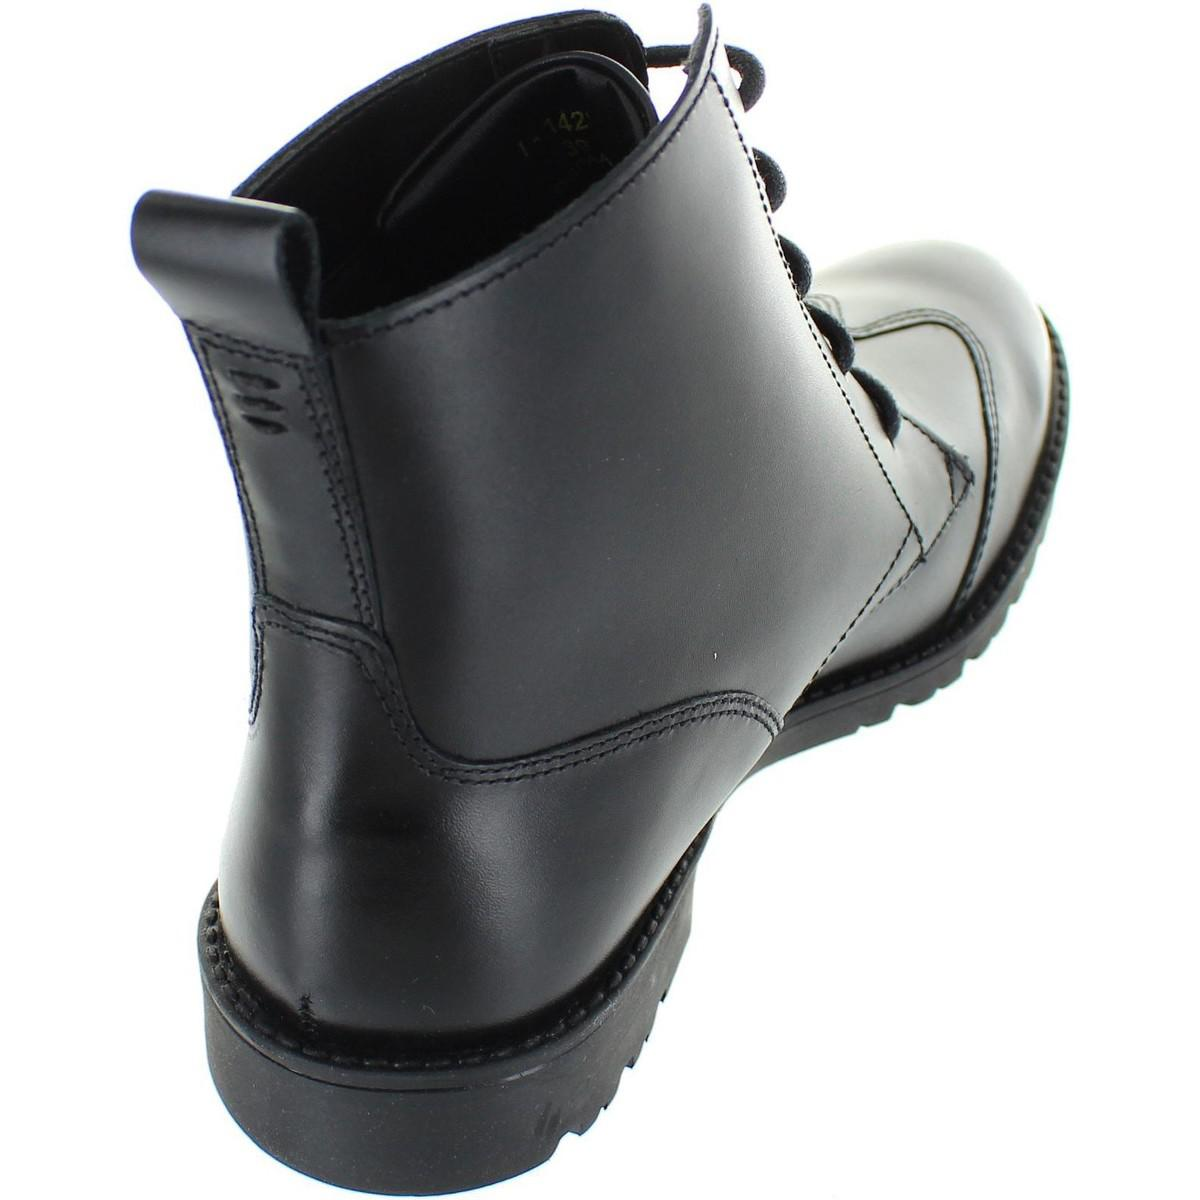 a3c19bb0 Kickers Lachly Hi Lthr Af Women's Low Ankle Boots In Black in Black ...